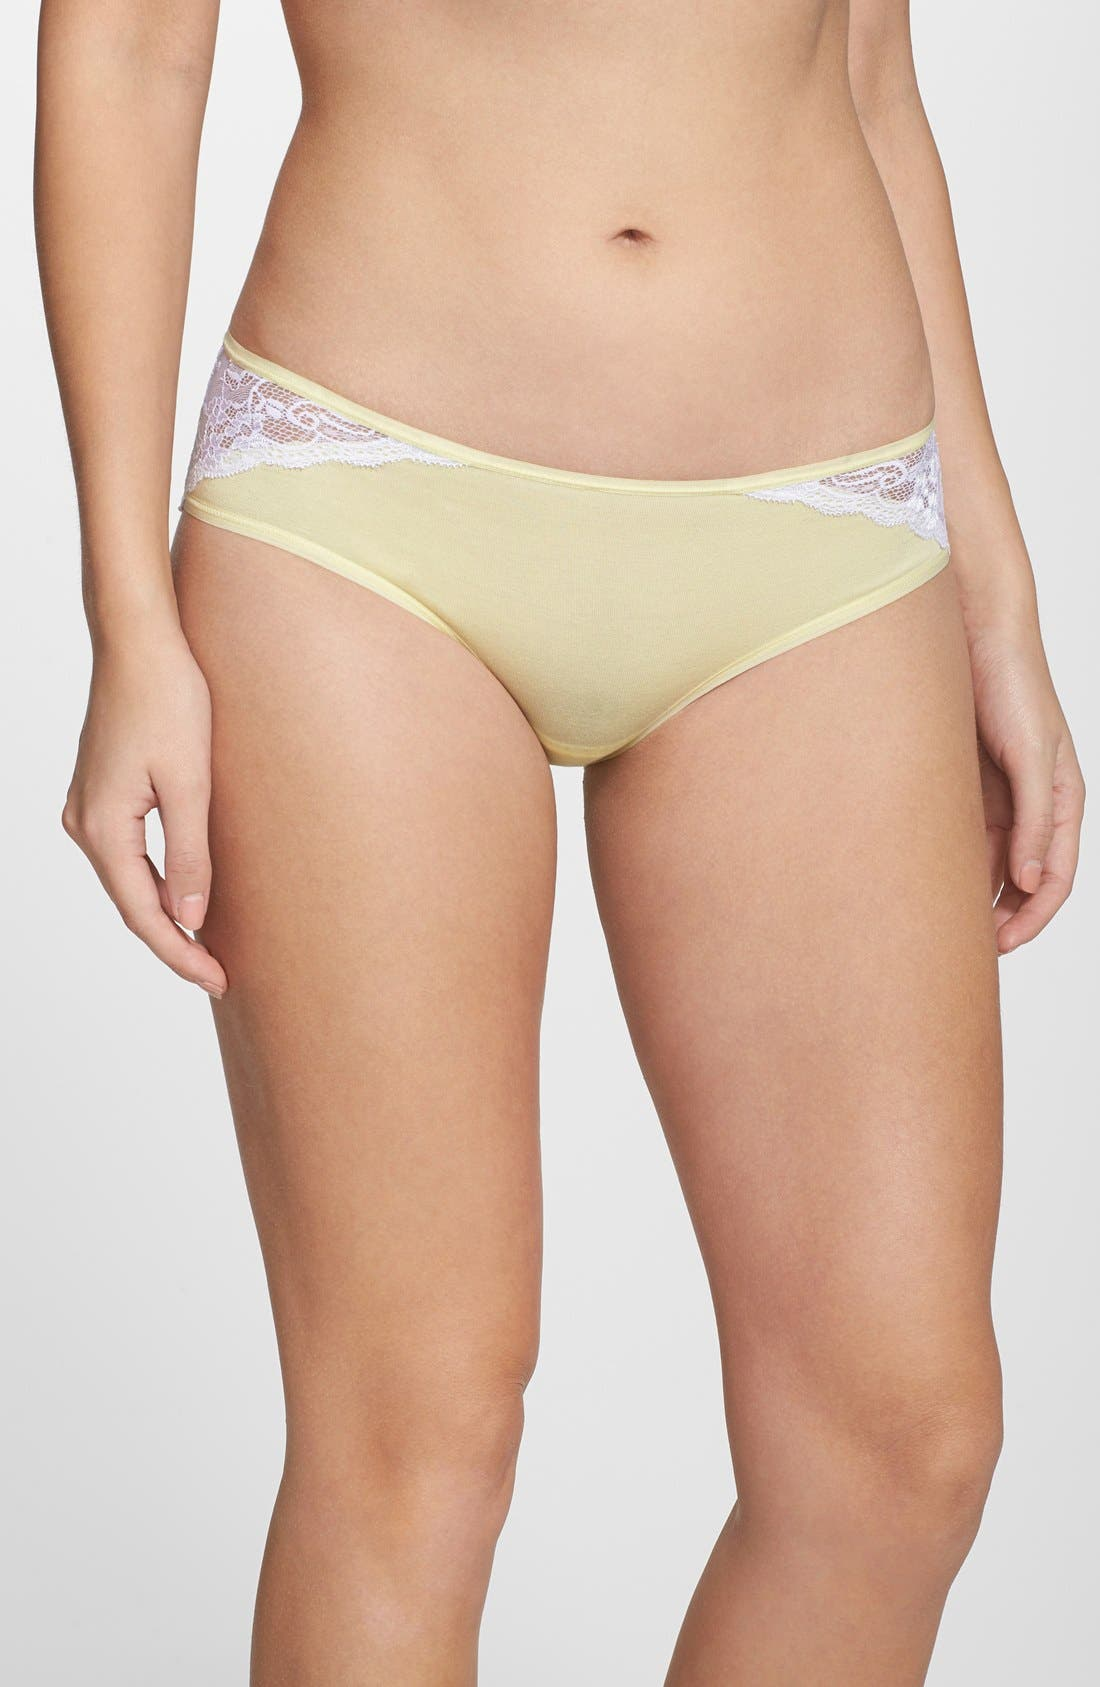 Alternate Image 1 Selected - Felina 'Charming' Lace Back Hipster Briefs